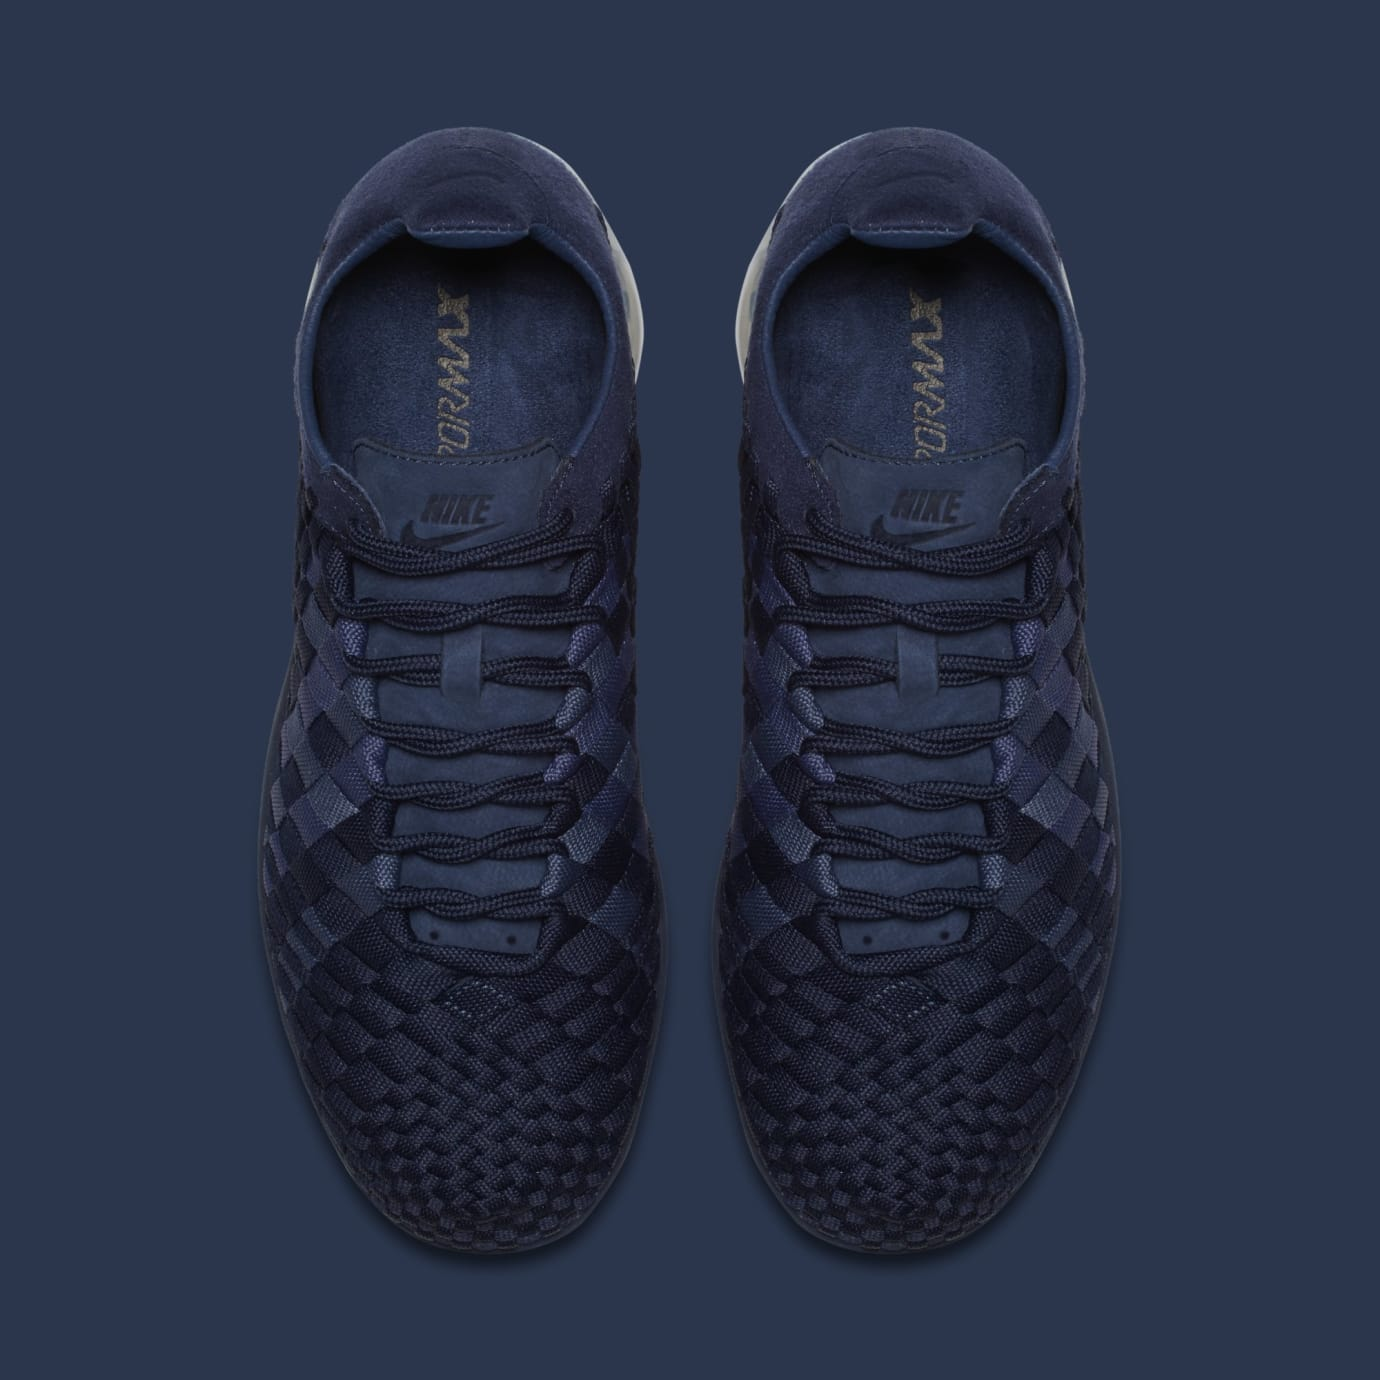 5da4597c58 Image via Nike Nike Air VaporMax Inneva 'Midnight Navy/Metallic Silver'  AO2447-400 (Top